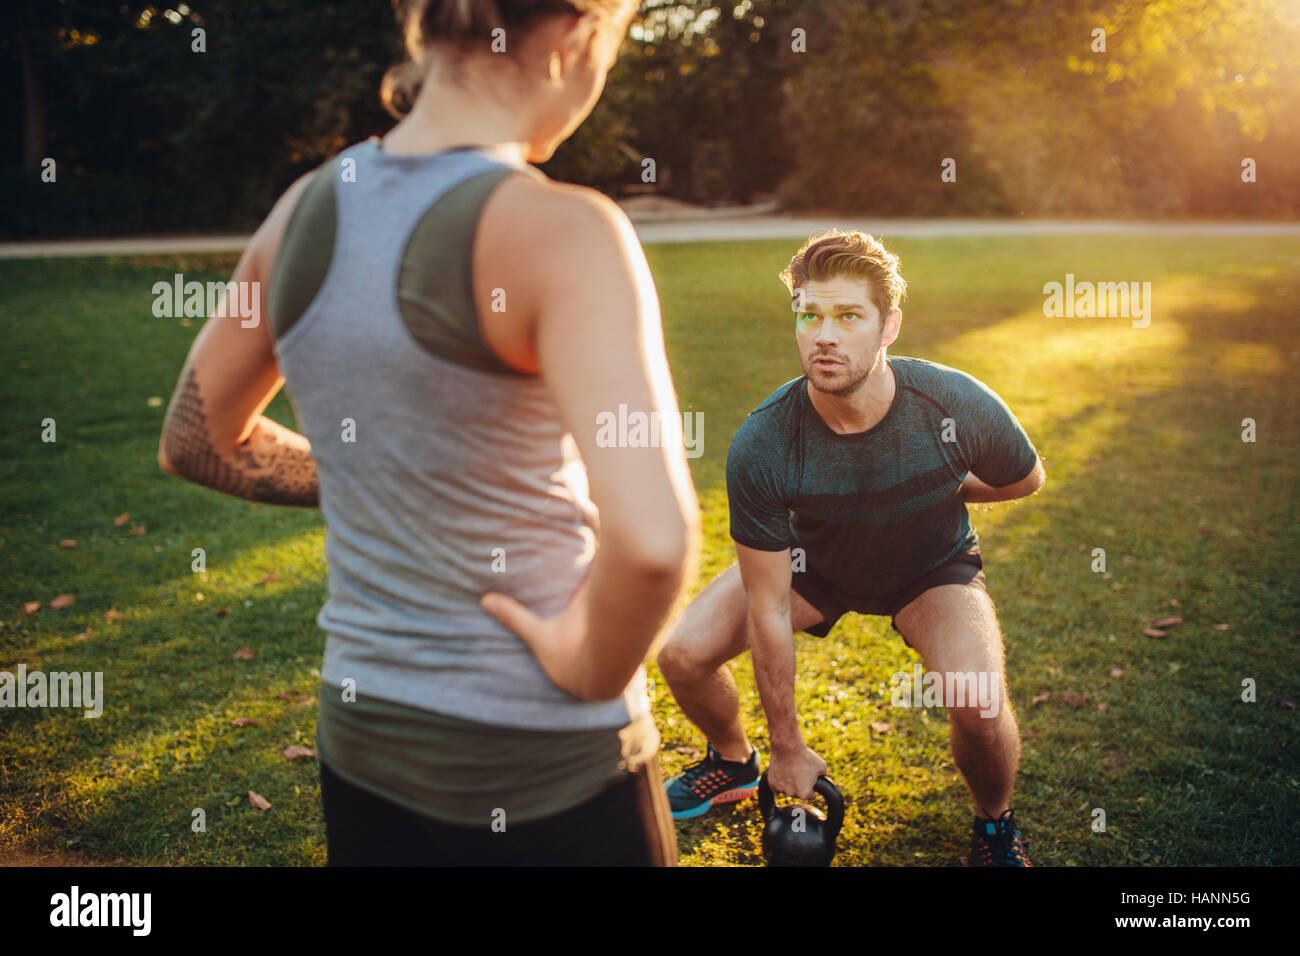 Female trainer guiding man while exercising with kettlebell in park. Personal trainer with man doing weight training - Stock Image